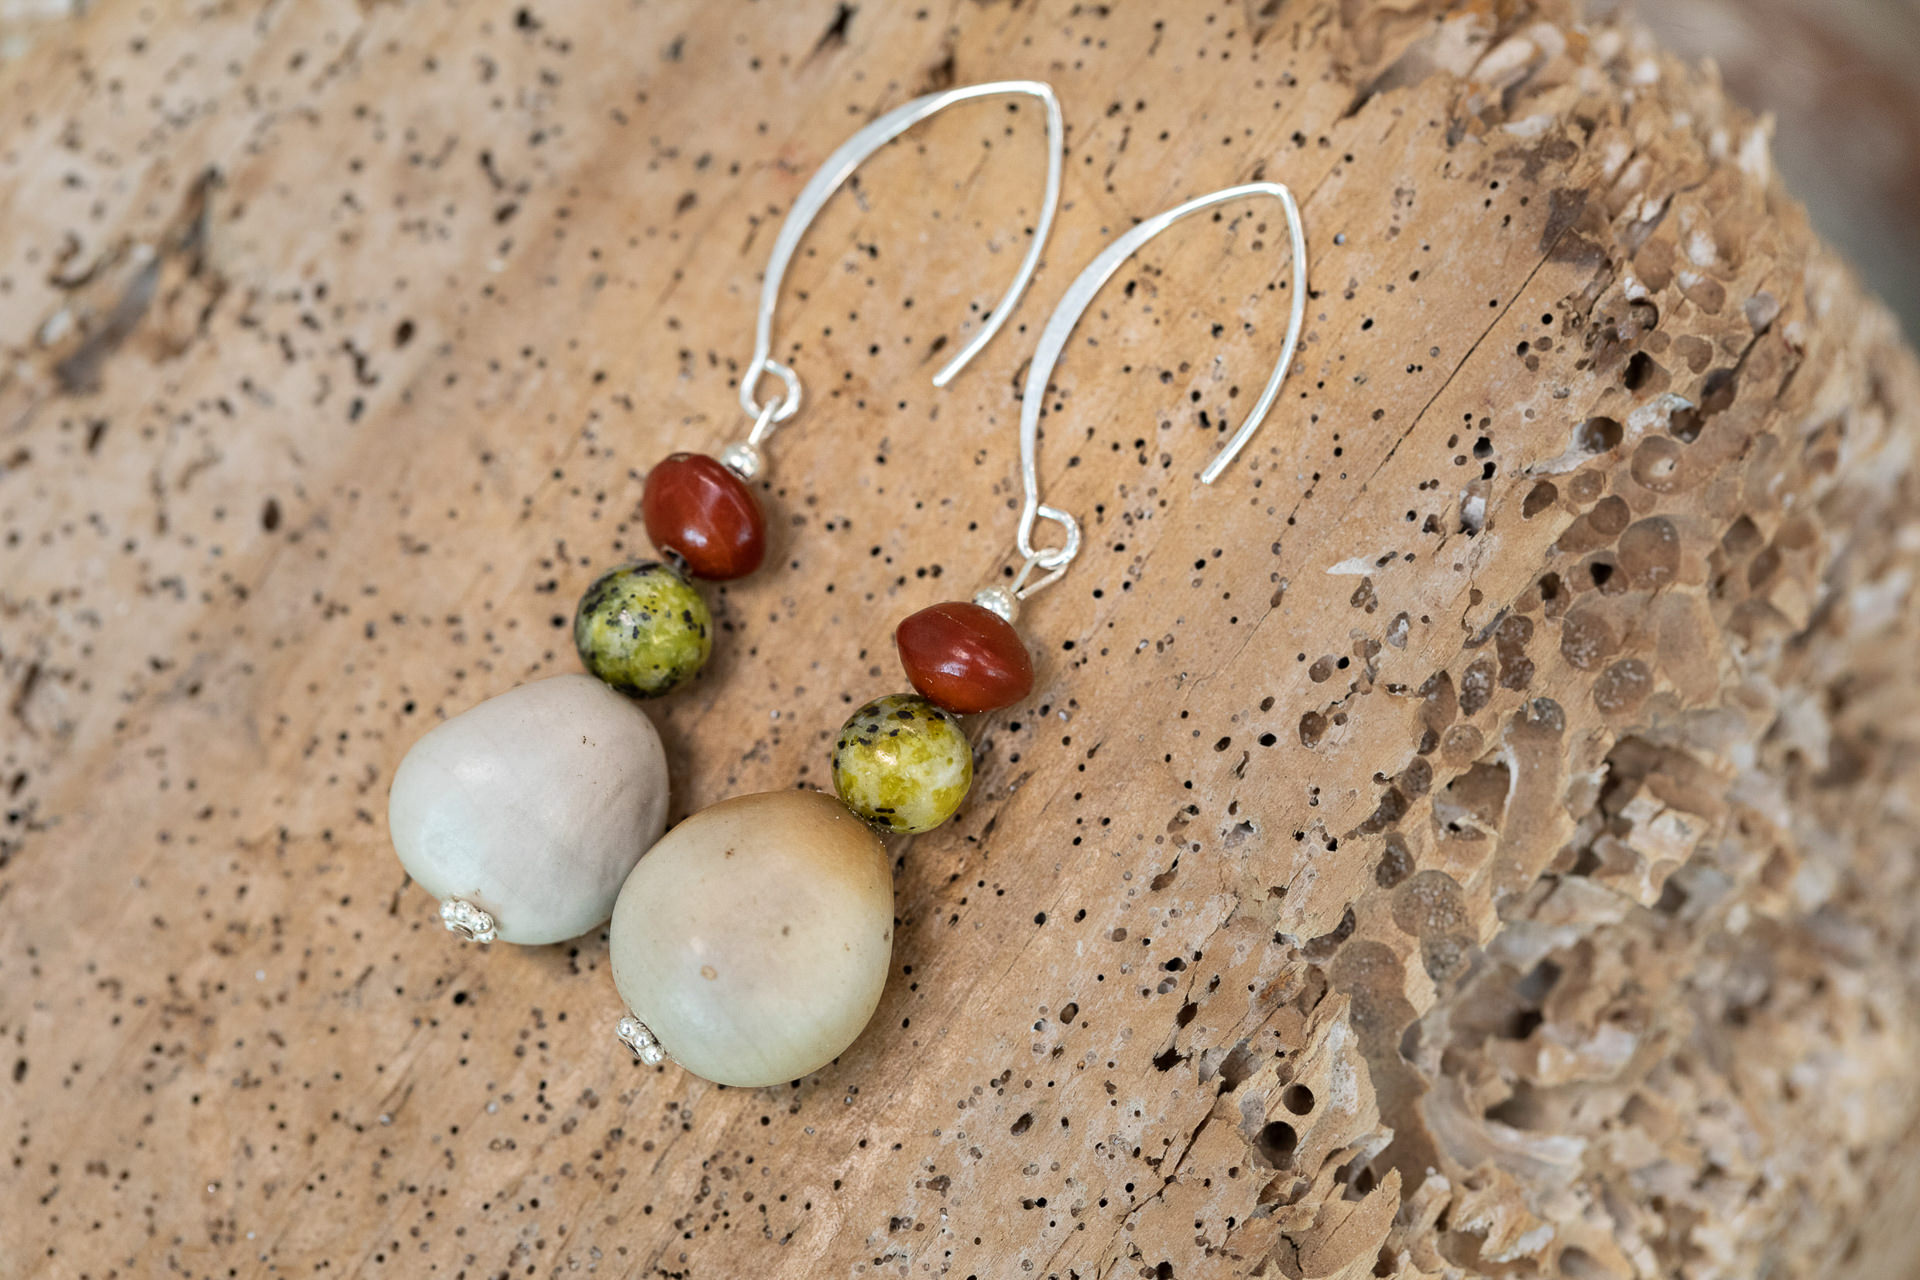 Seed jewellery earrings by Amber Vicum of Seed Tree at the Island Arts Gallery